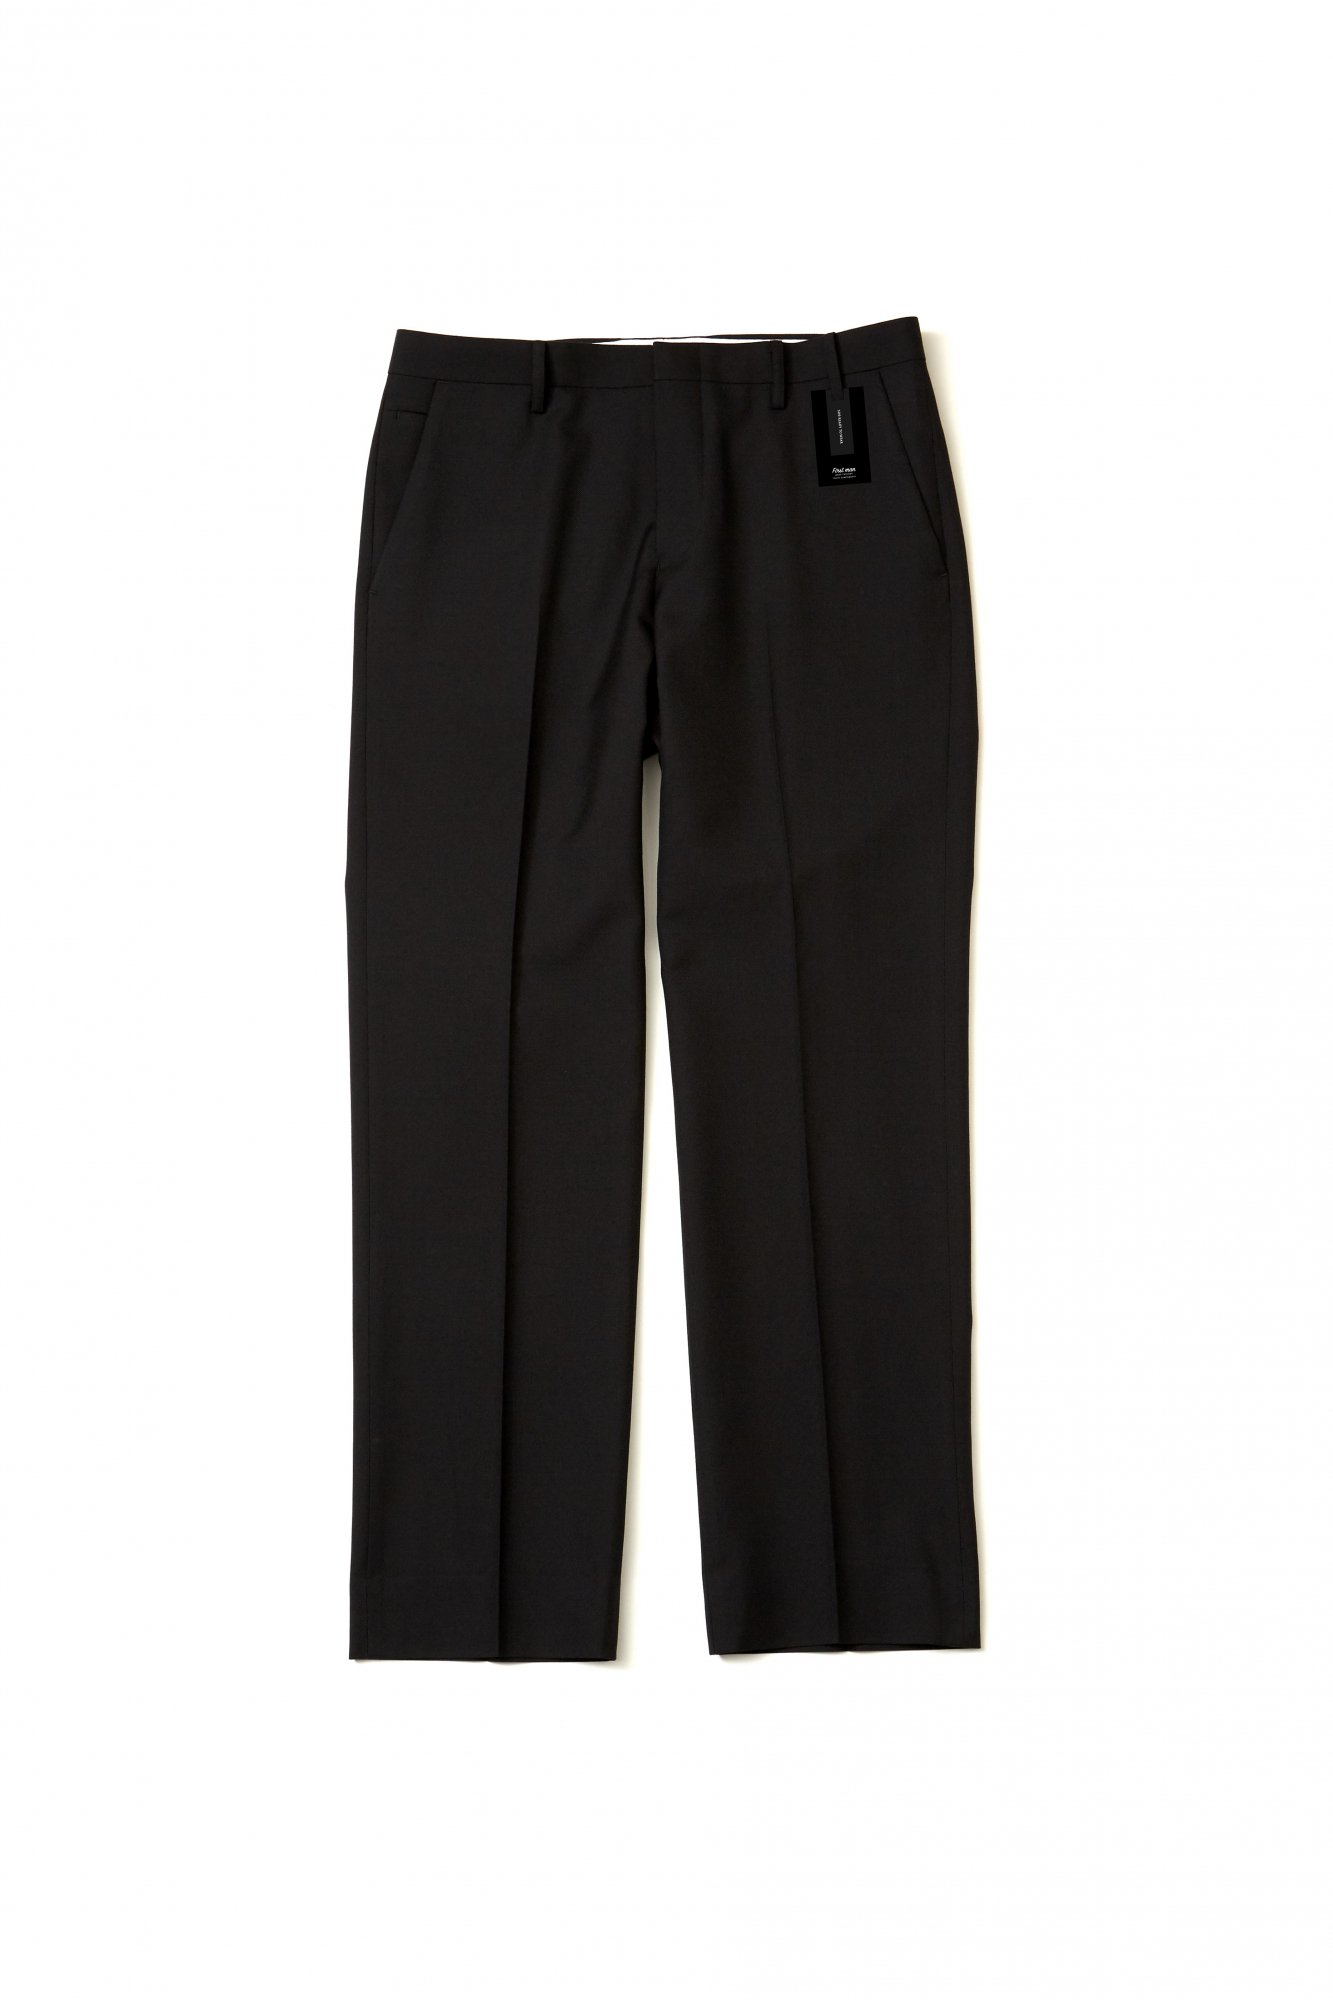 soe<br />Perfect Slacks for First Man / BLACK<img class='new_mark_img2' src='https://img.shop-pro.jp/img/new/icons14.gif' style='border:none;display:inline;margin:0px;padding:0px;width:auto;' />